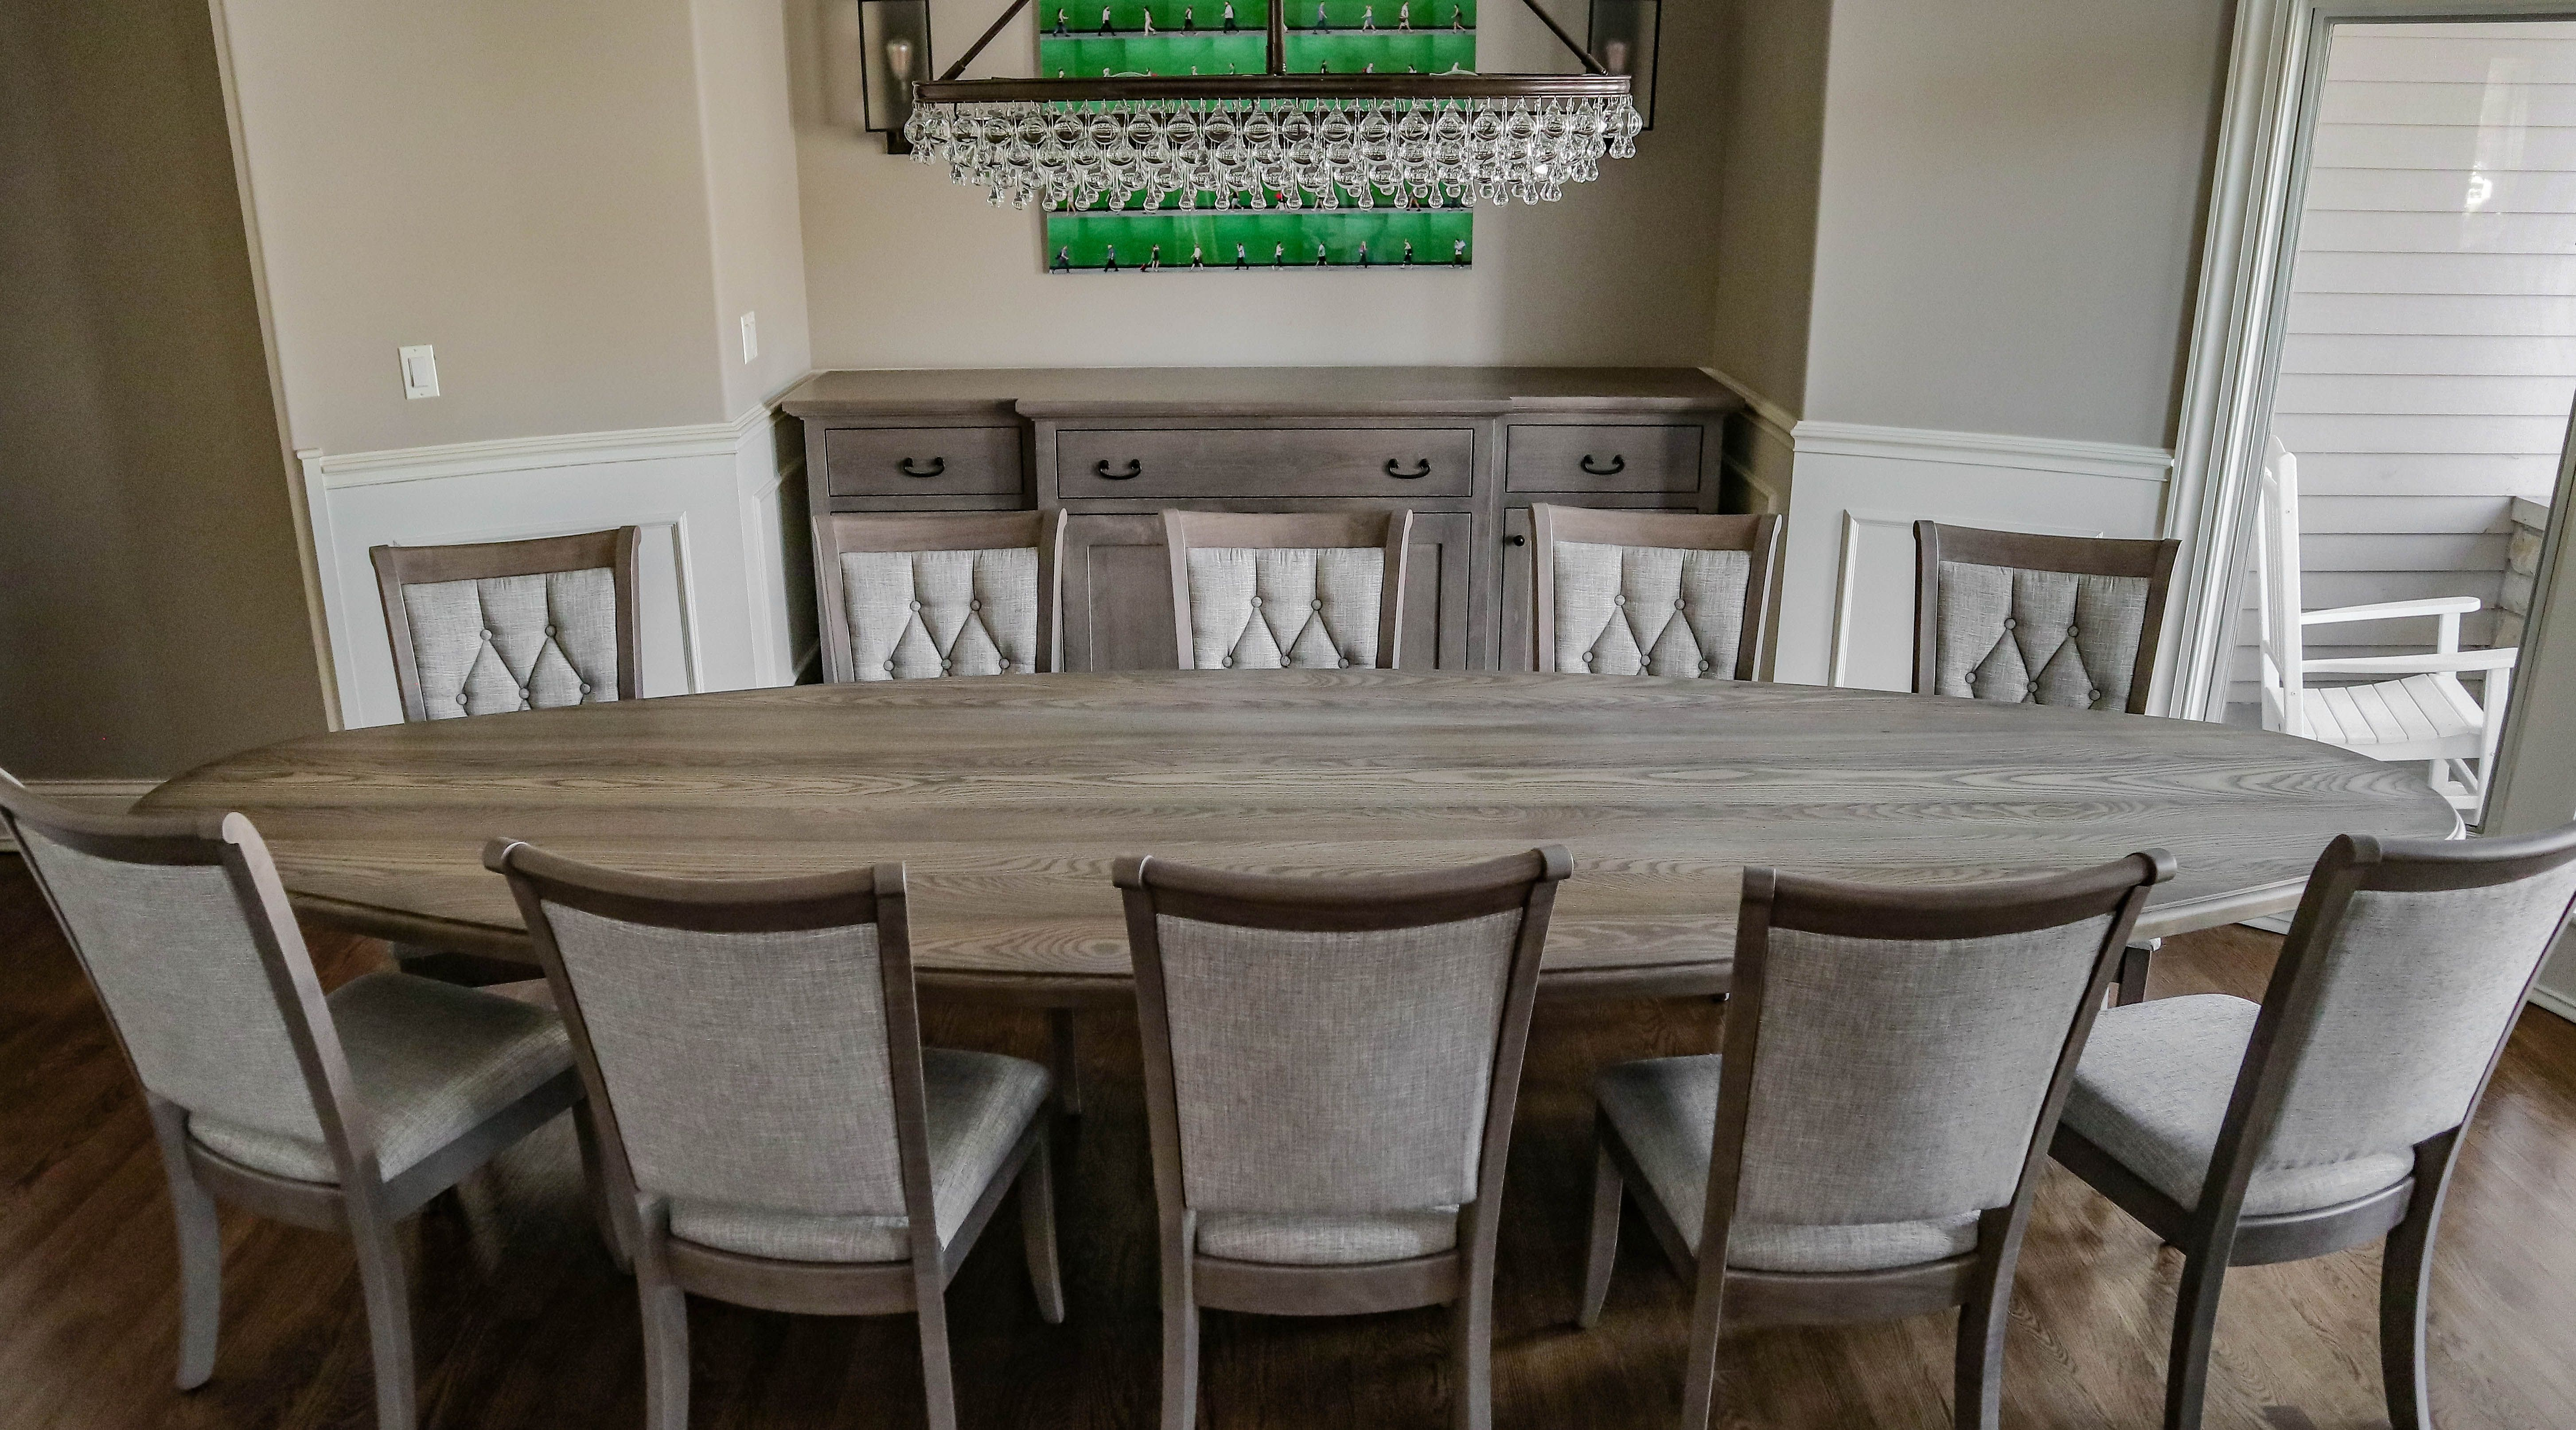 Table, chairs, and buffet finish off the furniture for this dining room. We built a custom oval table with a step down edge with chairs and a buffet to match.  #diningroomfurnishings #diningroomfurniture #diningroomtable #diningroomchairs #diningroombuffet #buffet #diningstorage #storagefurniture